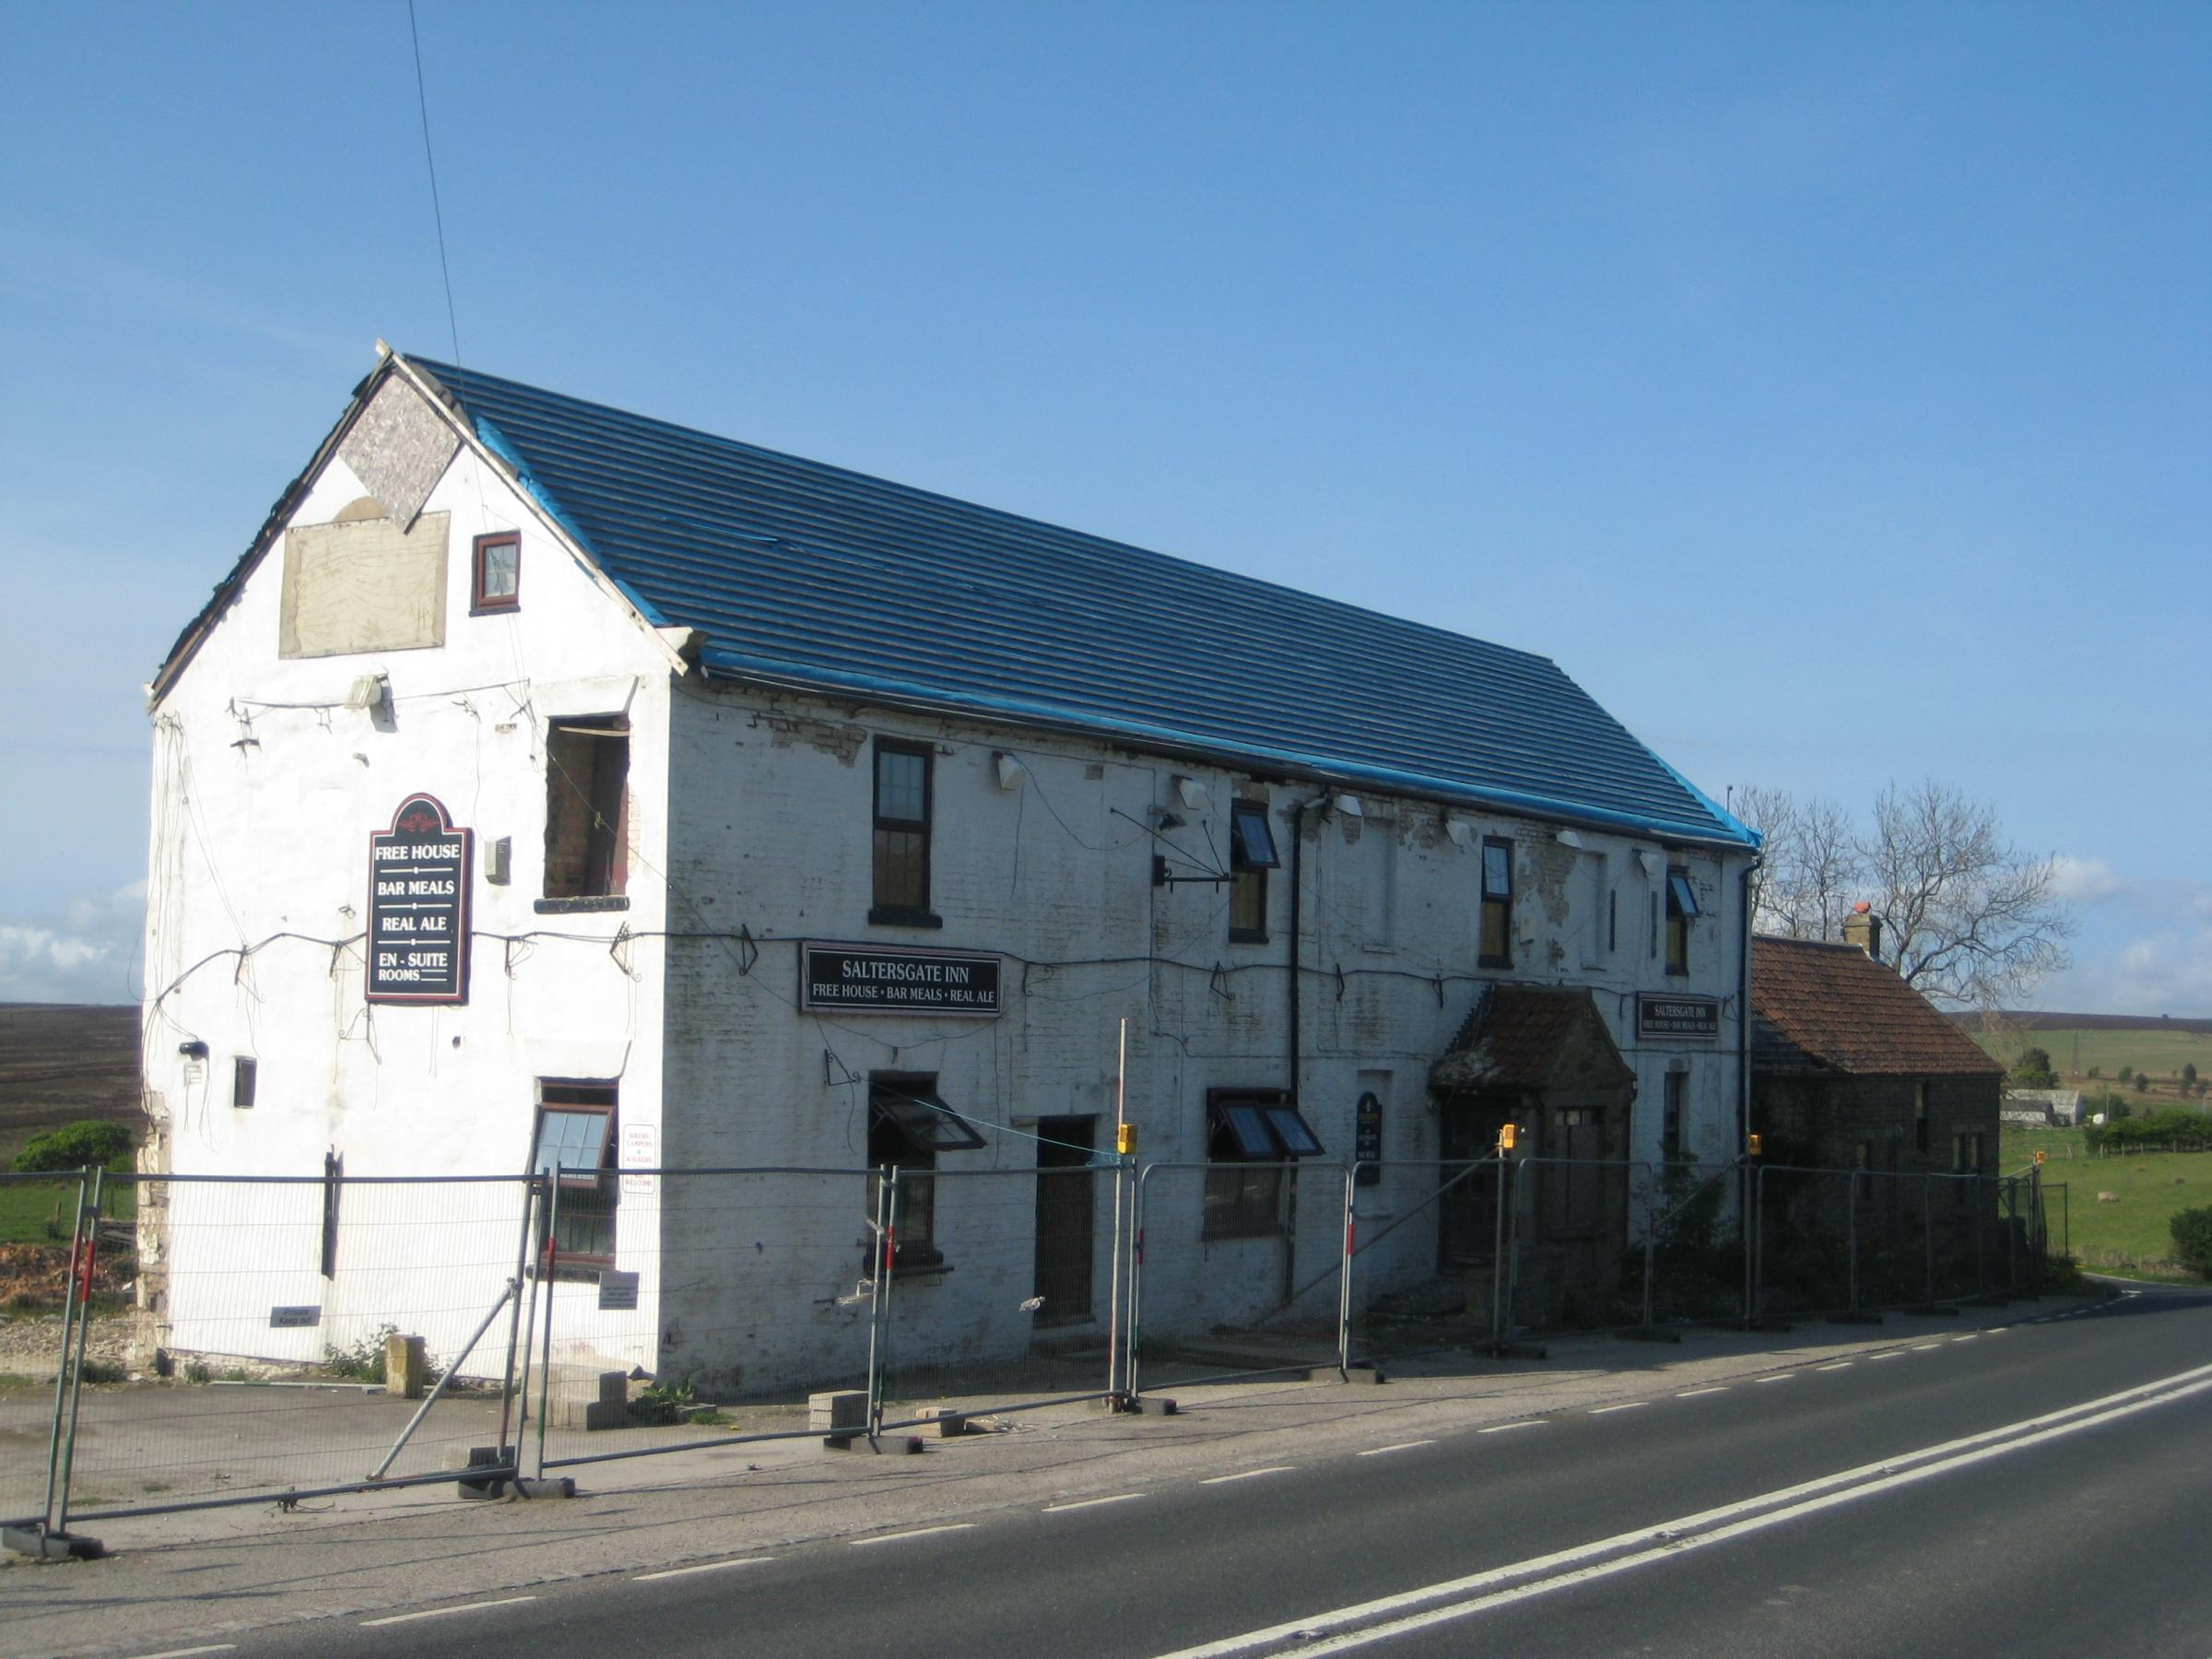 The Saltersgate Inn, pictured in 2011.